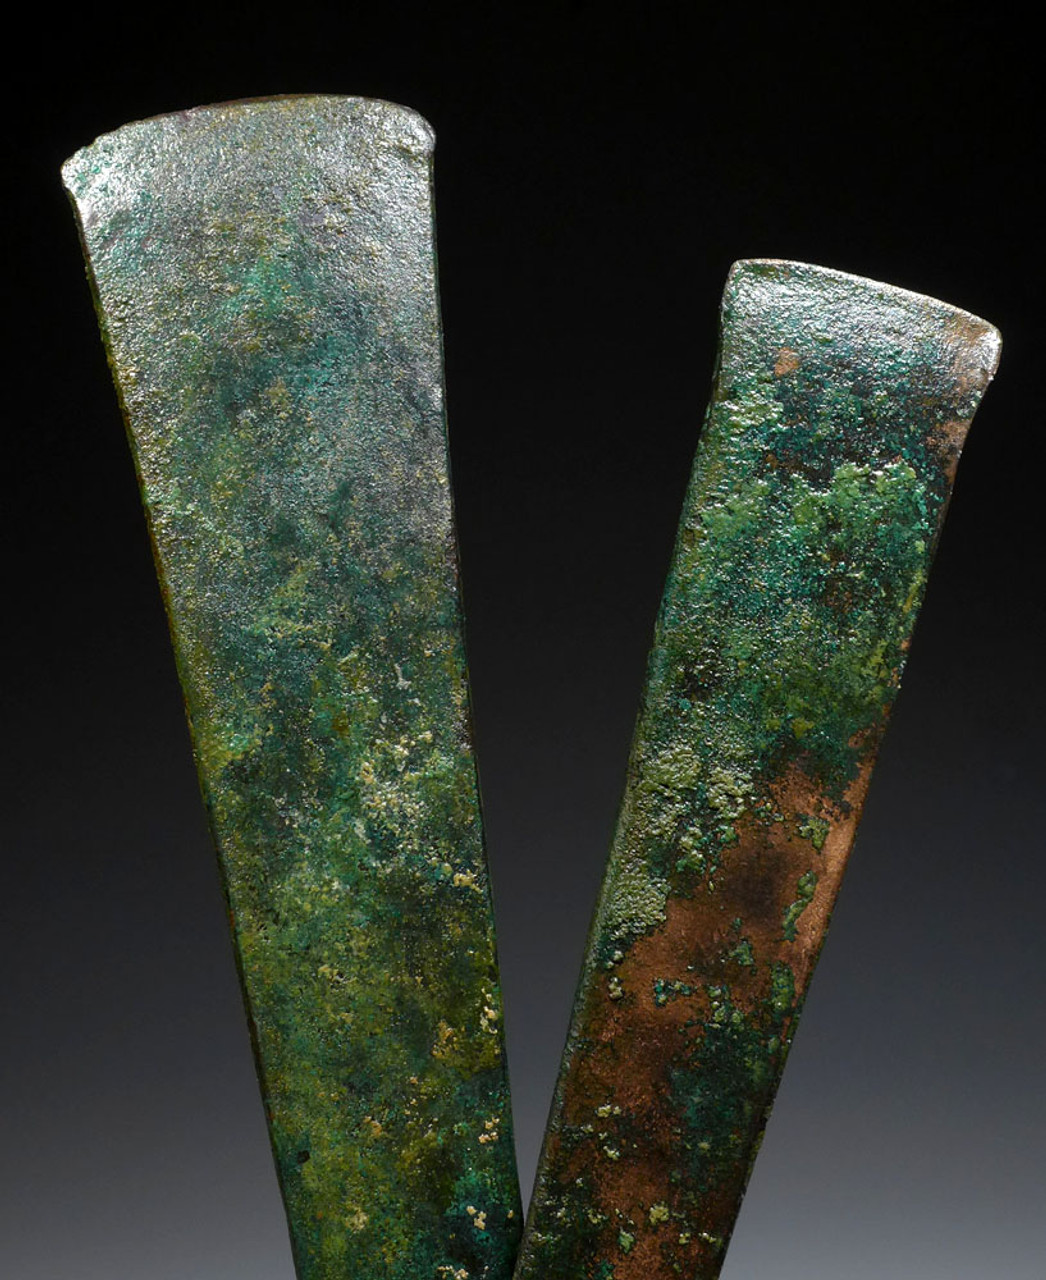 TWO EARLIEST KNOWN METAL AXES ANCIENT CHISEL ADZE AXE BLADES OF THE NEAR EASTERN BRONZE AGE *NEPC008